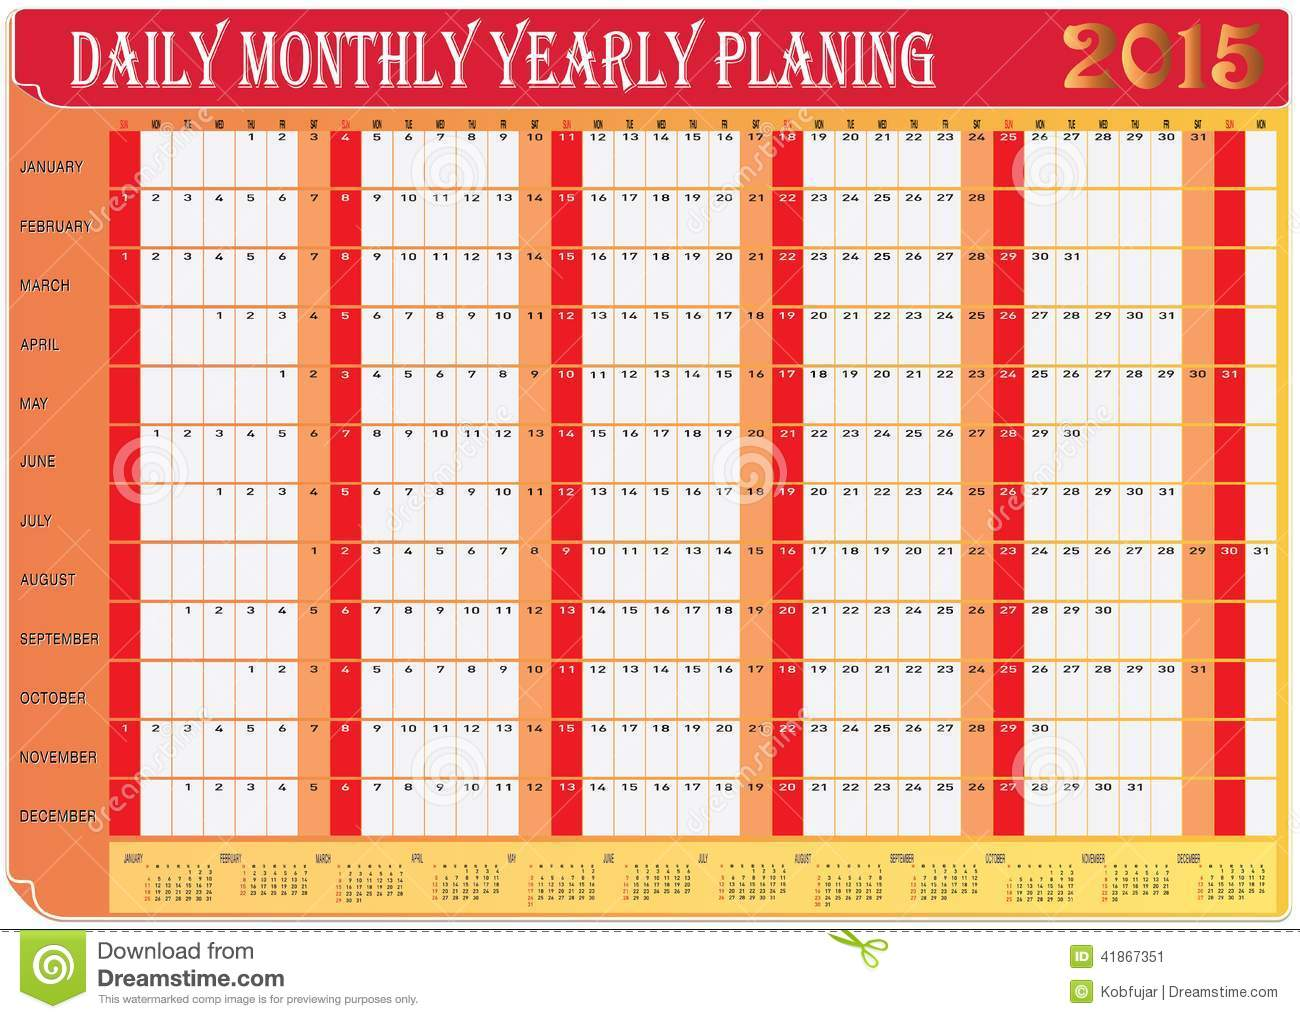 Year Calendar Chart : Daily monthly yearly calendar planing chart stock